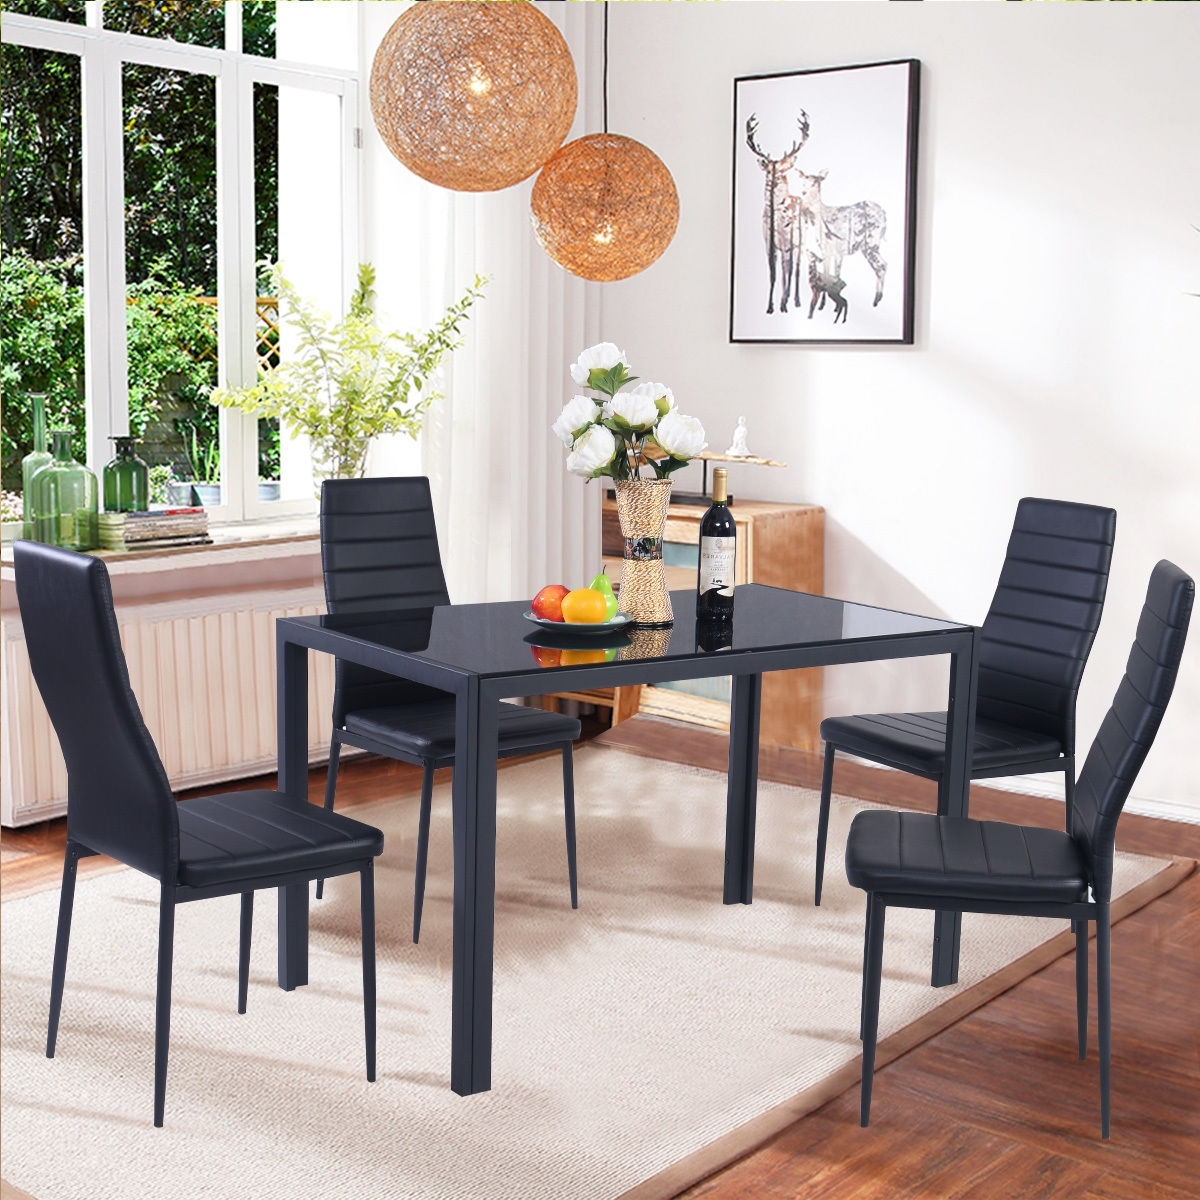 4 Seat Dining Tables In Well Known Costway 5 Piece Kitchen Dining Set Glass Metal Table And 4 Chairs (View 3 of 25)